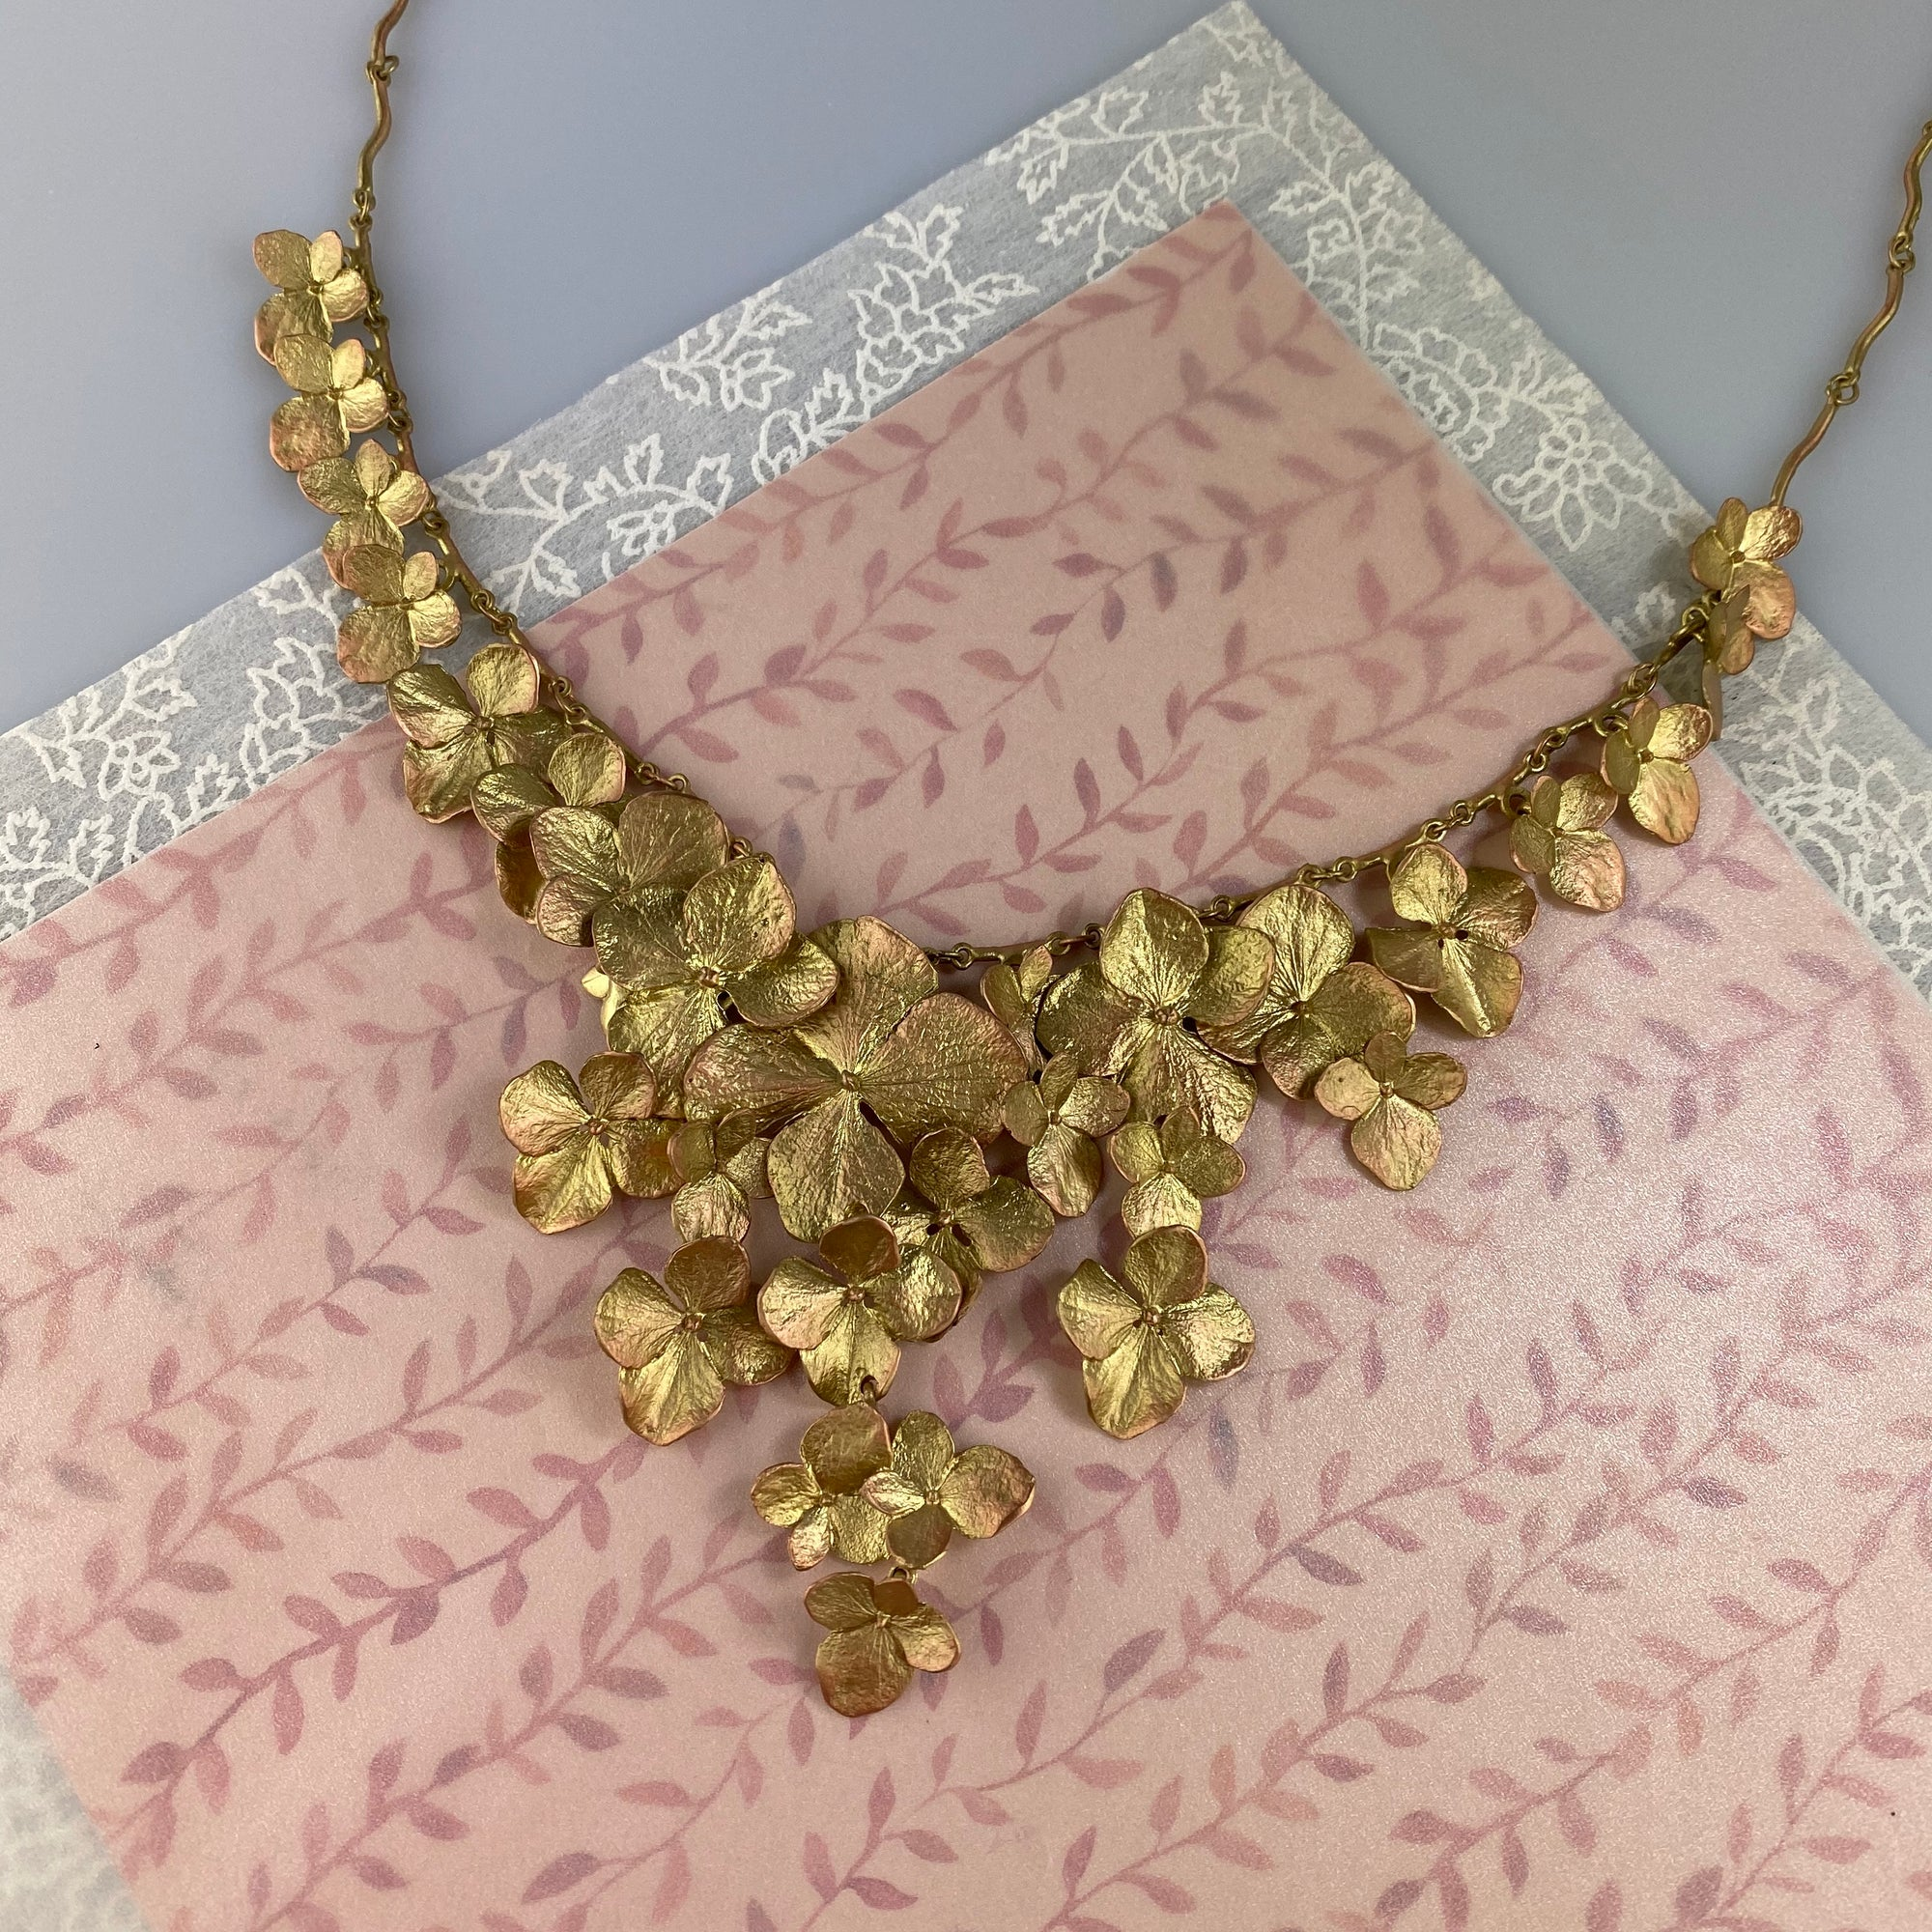 Hydrangea Full Petals Necklace - Heart of the Home PA